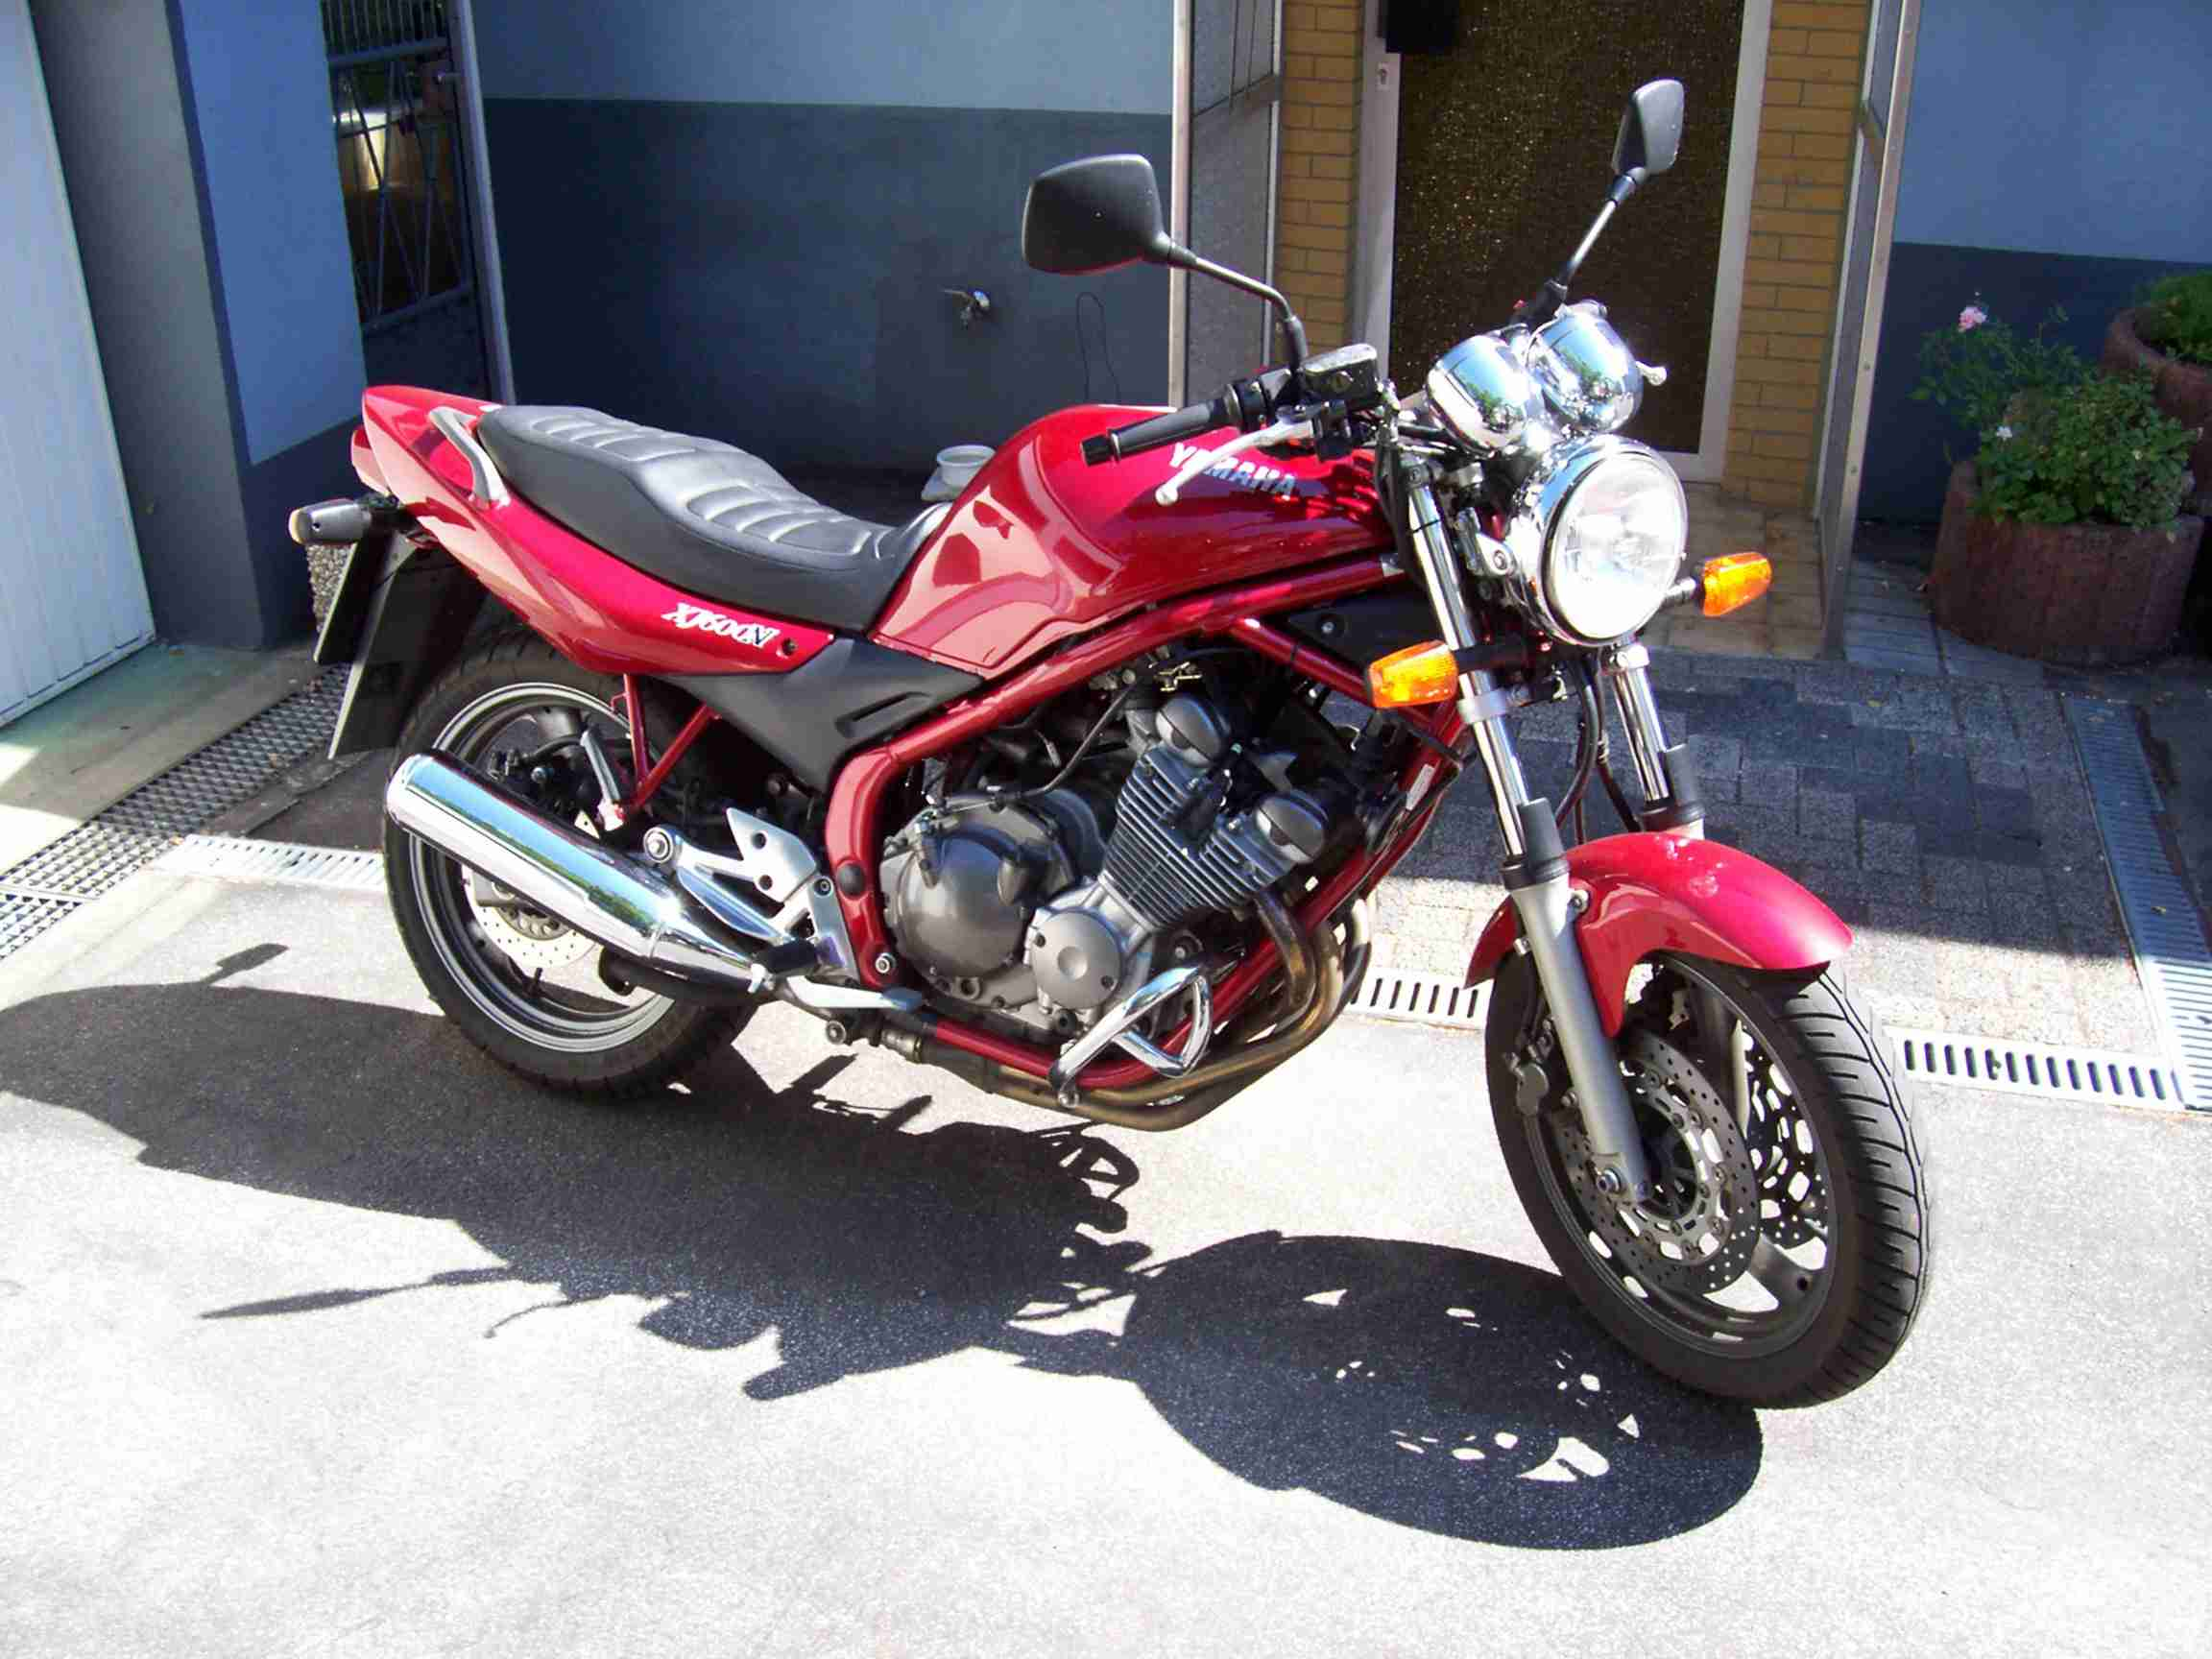 yamaha xj600 review and photos. Black Bedroom Furniture Sets. Home Design Ideas